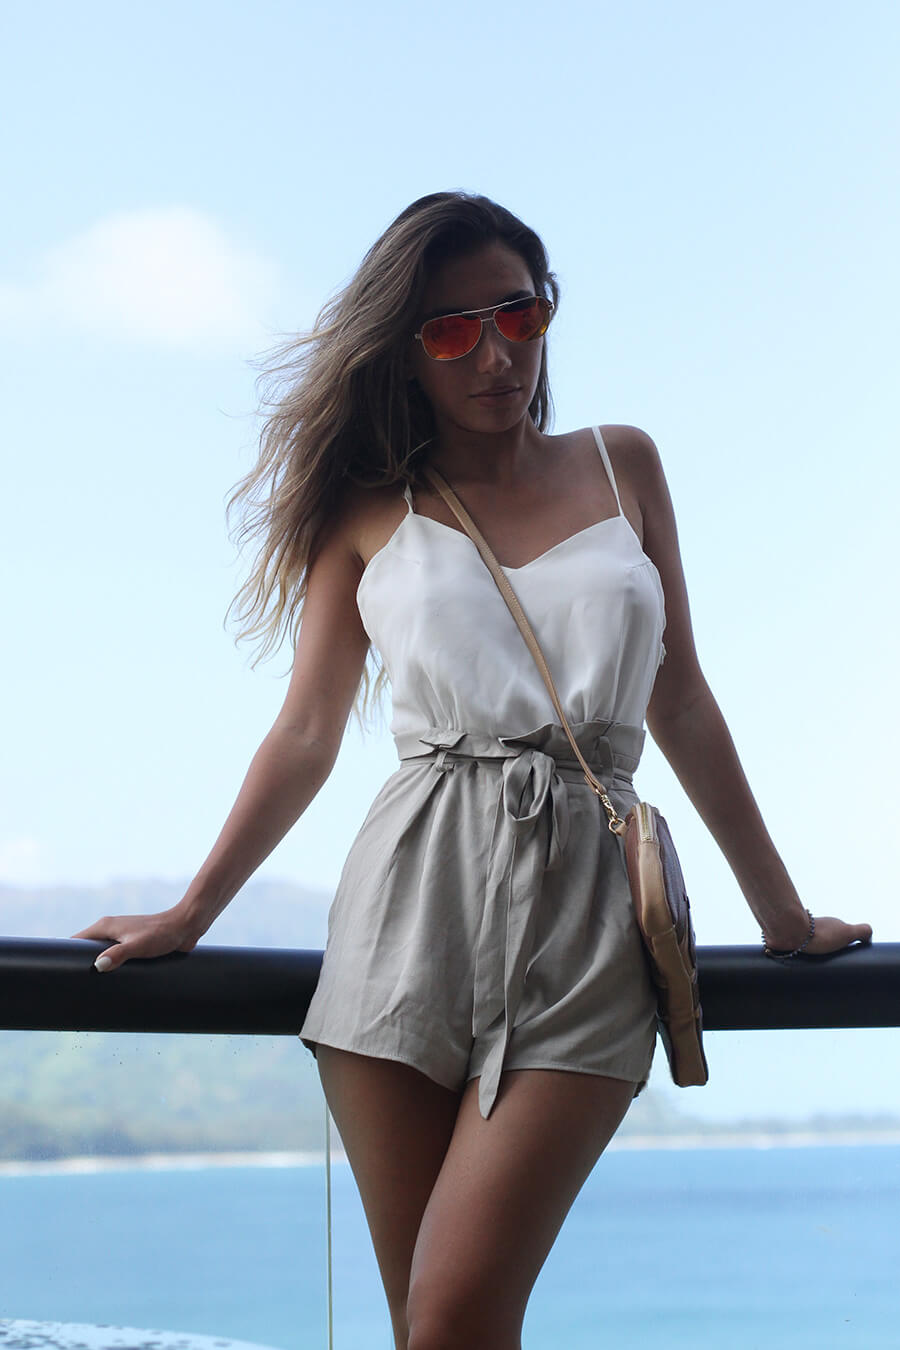 Zaful romper in Hawaii.